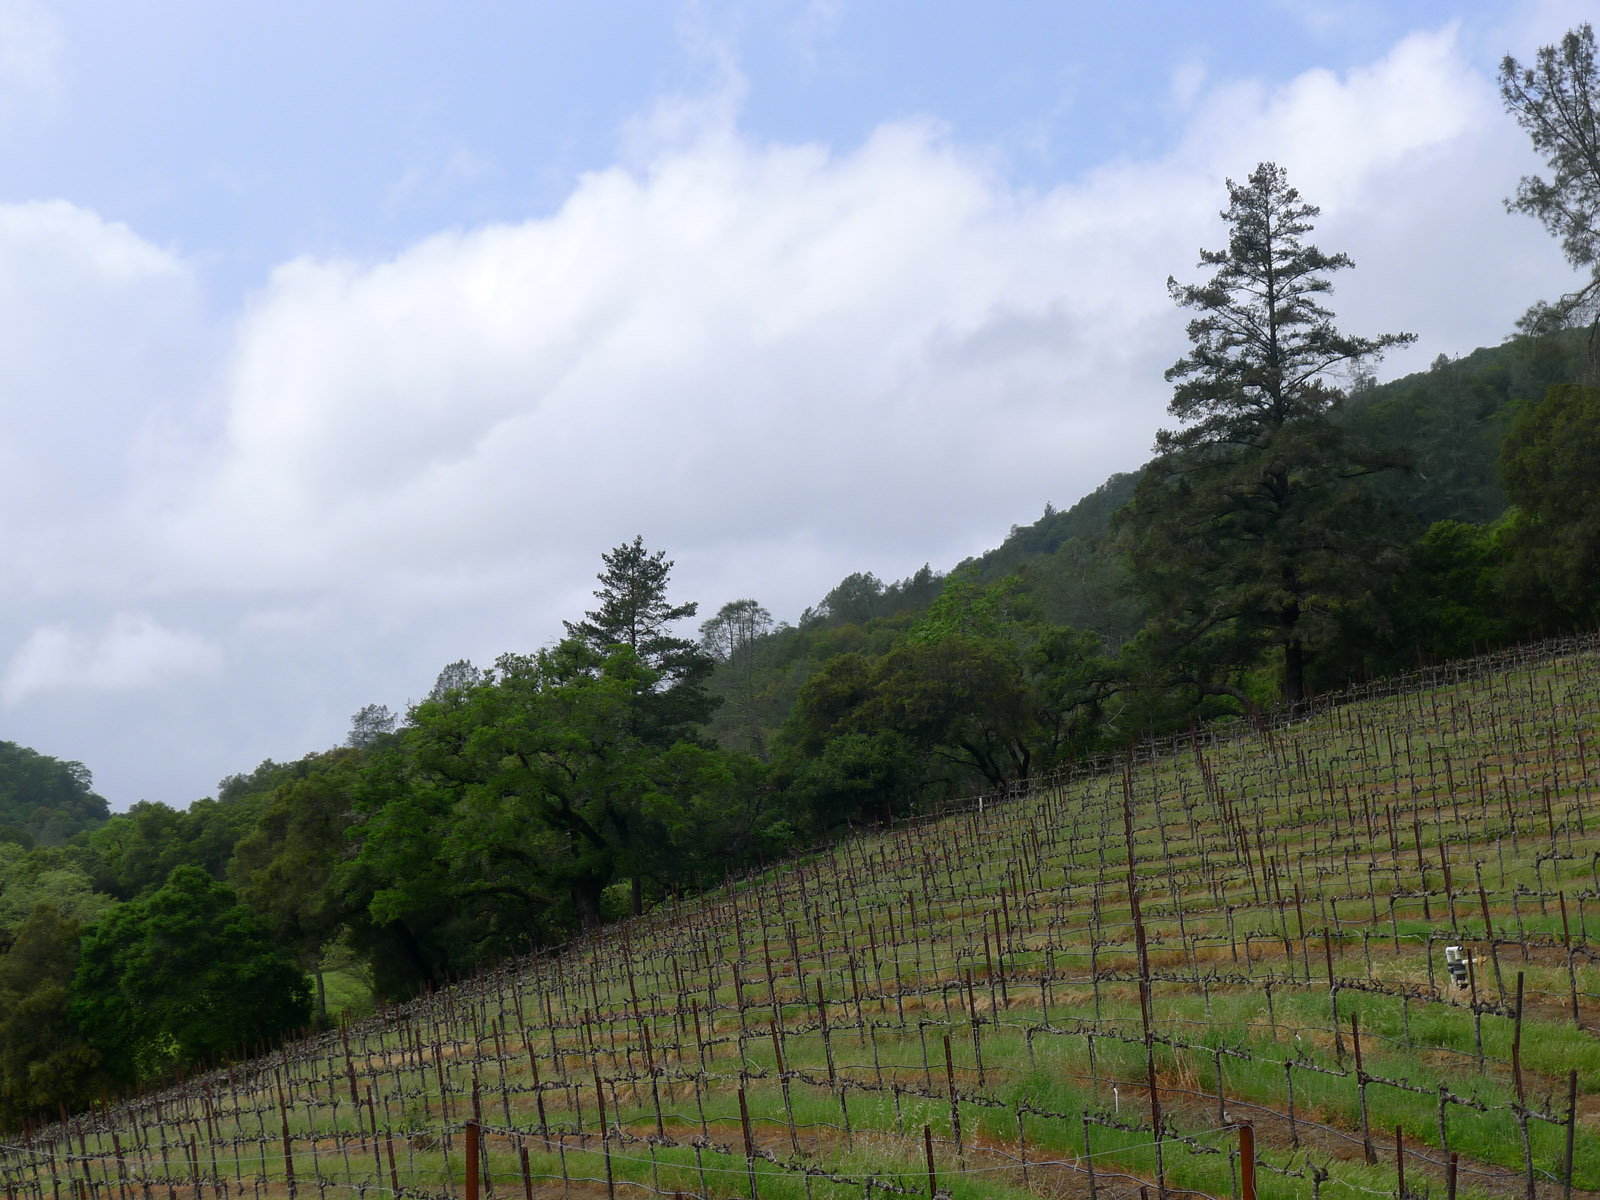 Sbragia Vineyard